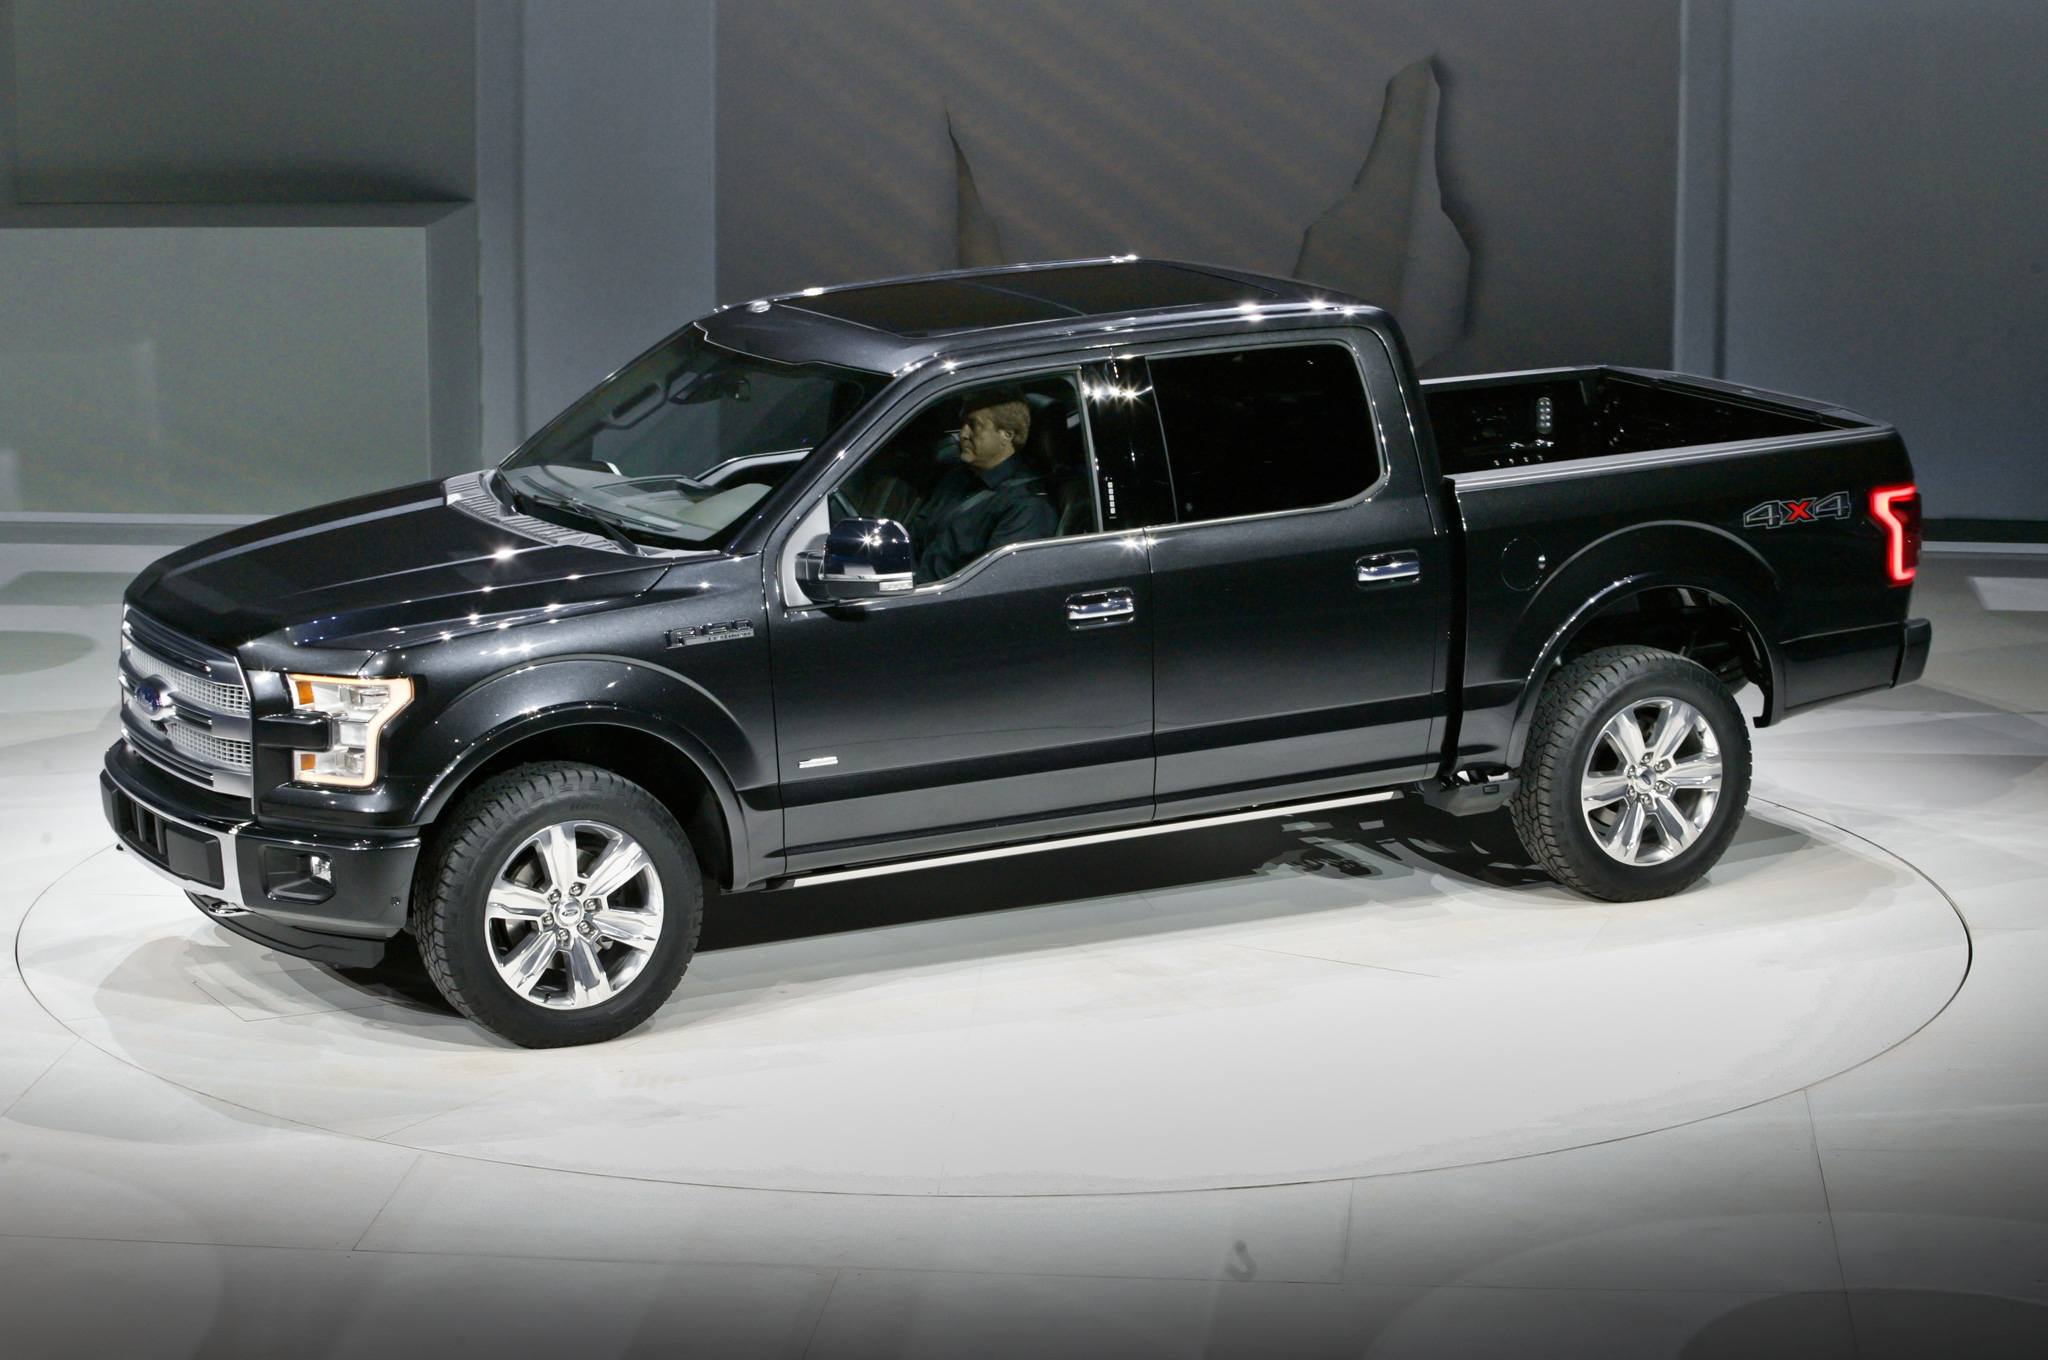 Ford F 150 Pick Up 2015 Wiring Diagrams 2014 Engines First Look Motor Trend Rh Motortrend Com F150 Pickup 2018 Engine Options